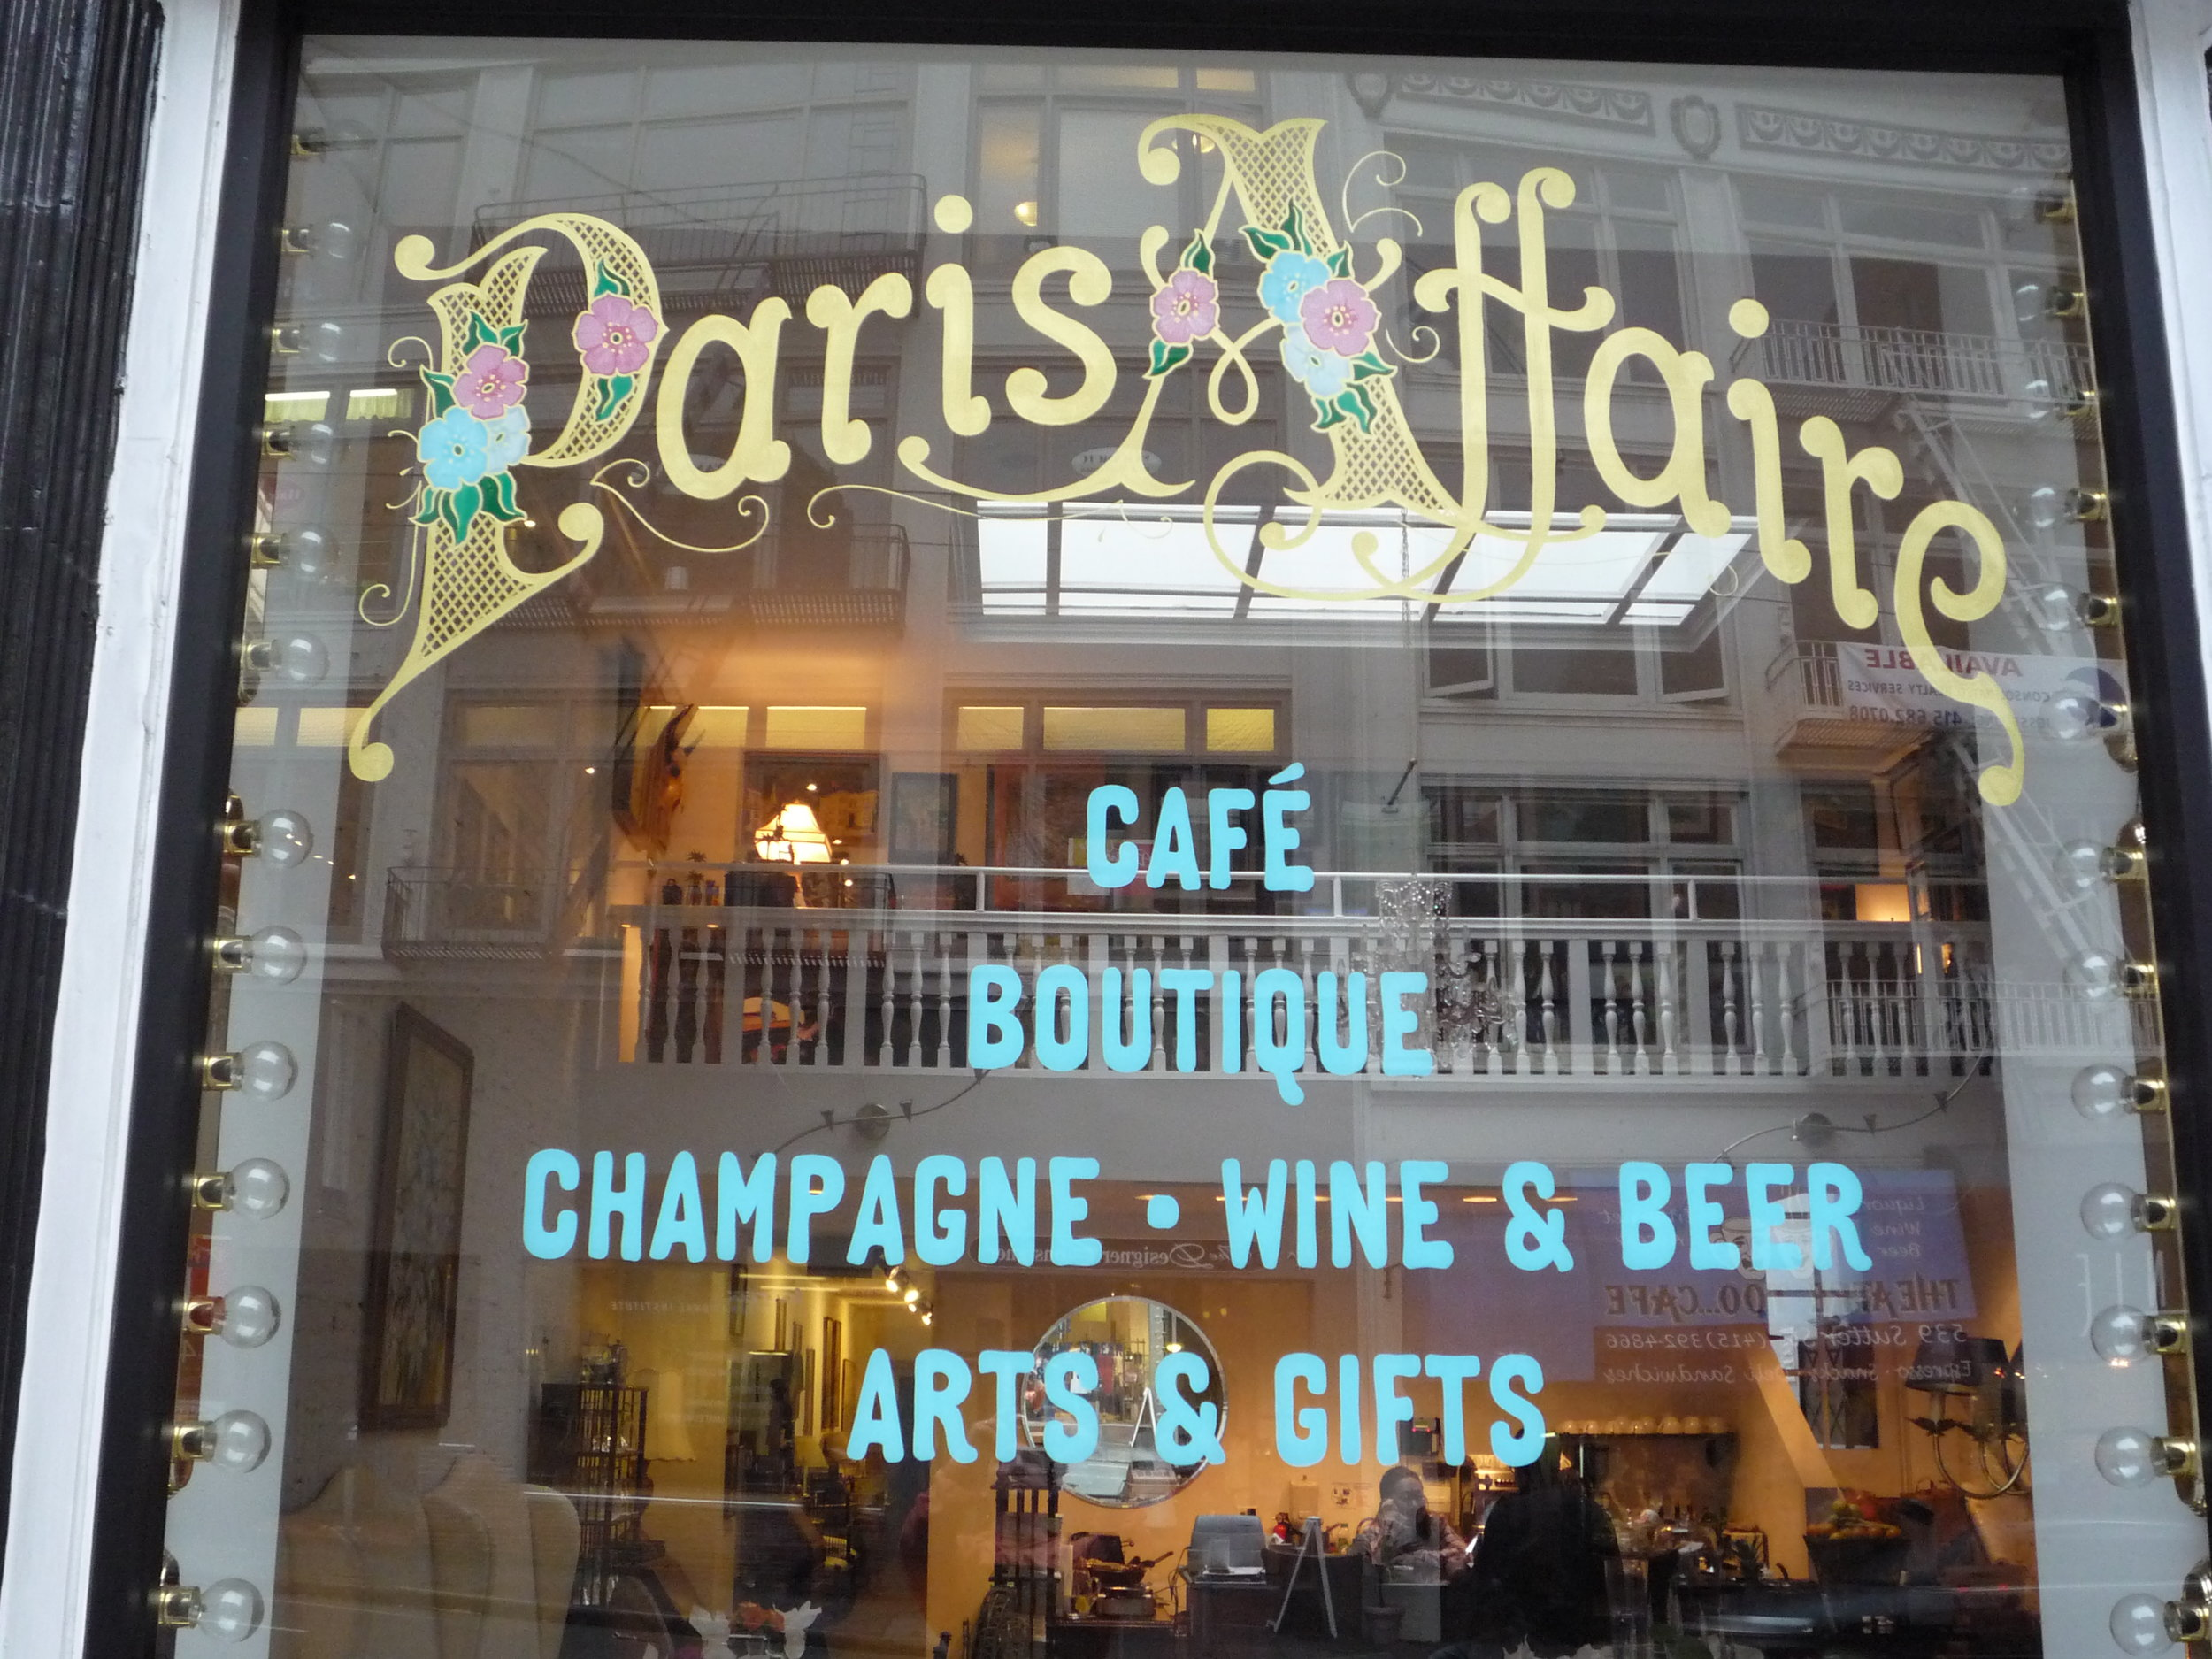 WINDOW-paris-affaire_3328957823_o.jpg